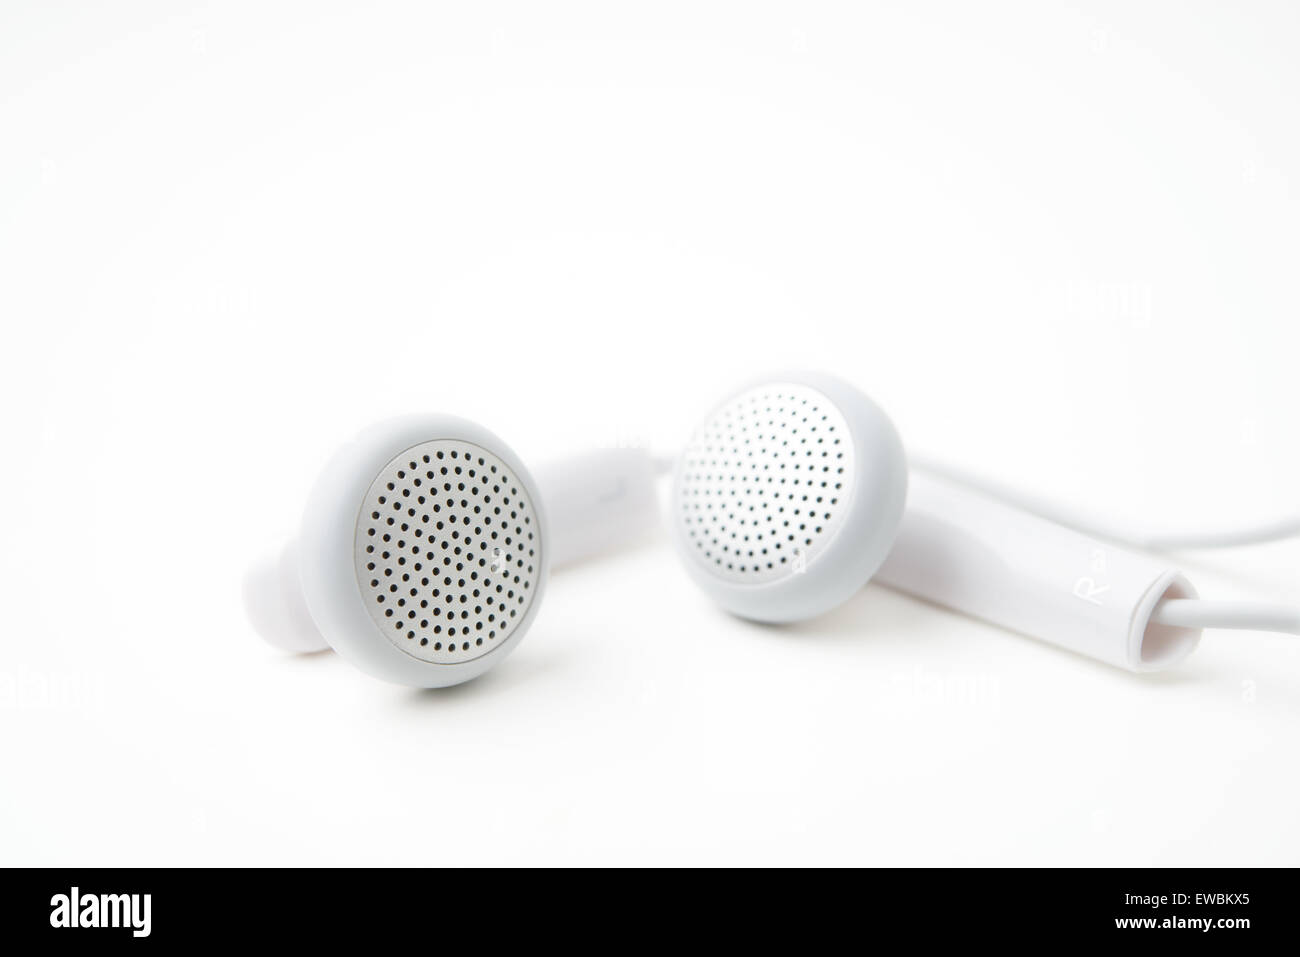 earbuds on white background - Stock Image